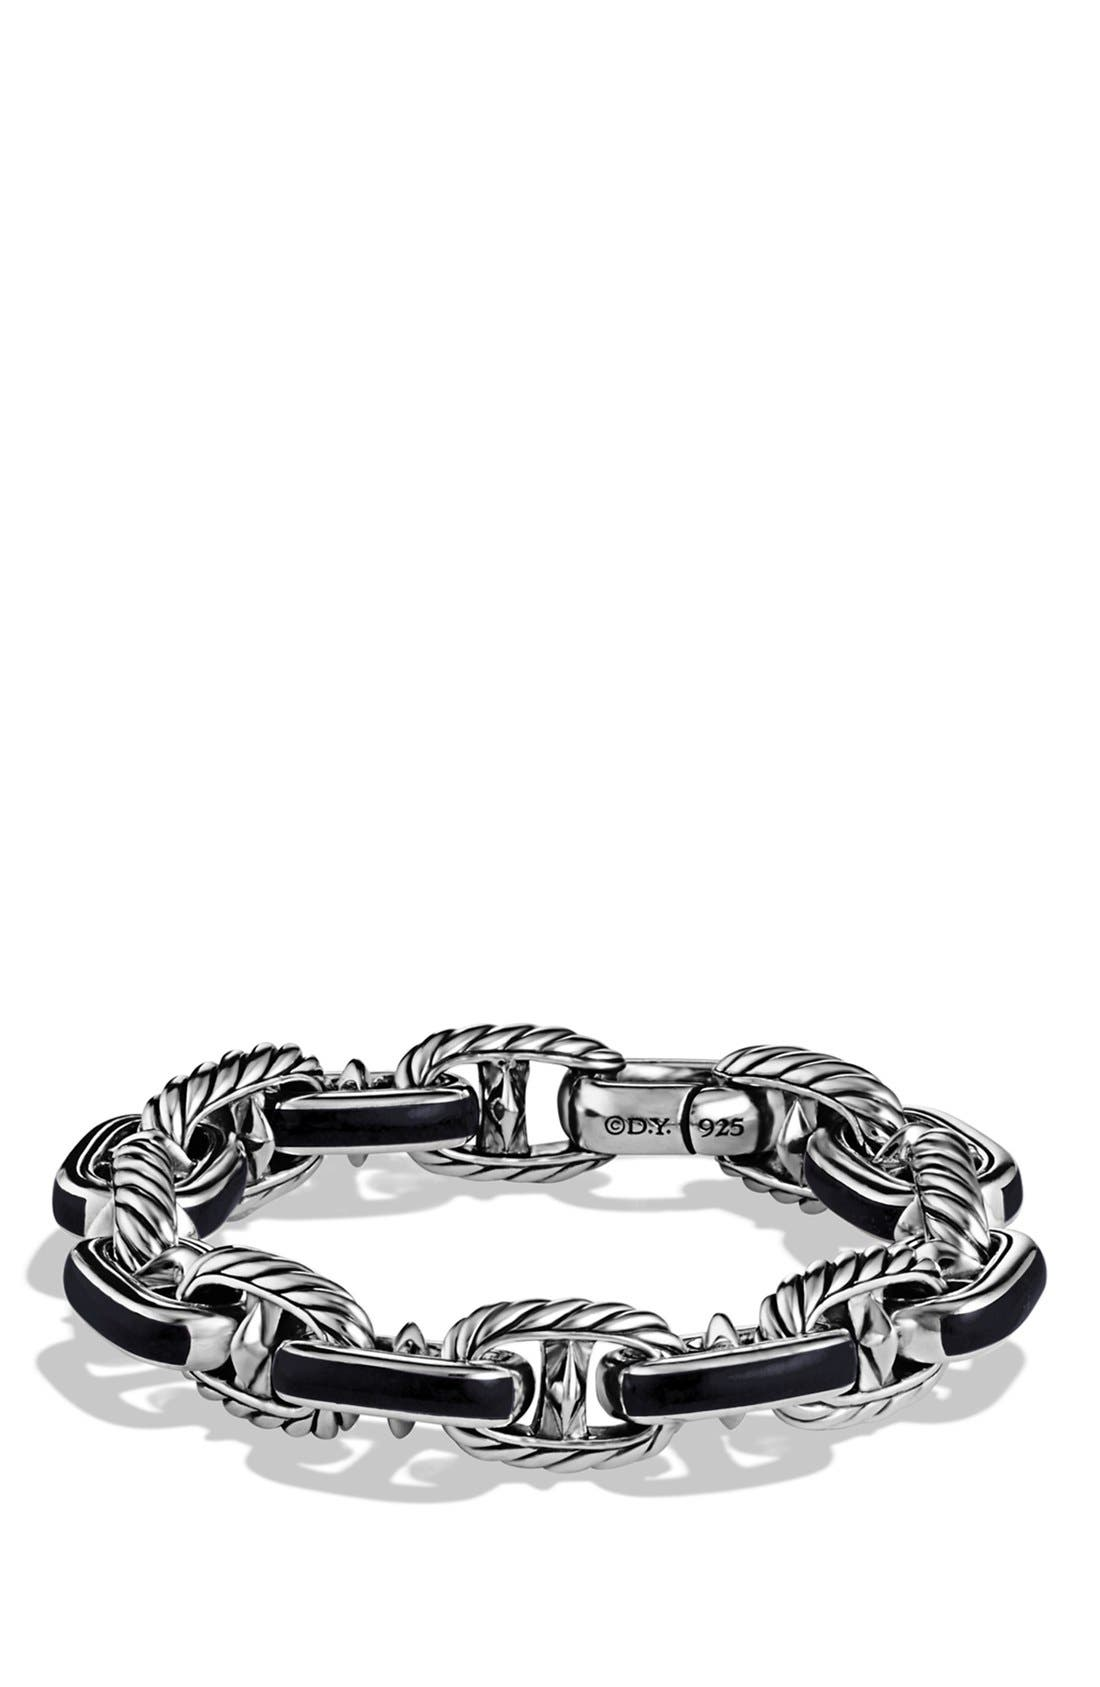 Main Image - ANCHOR LINK BRACELET 11.5MM SS W/ BLACK ONYX